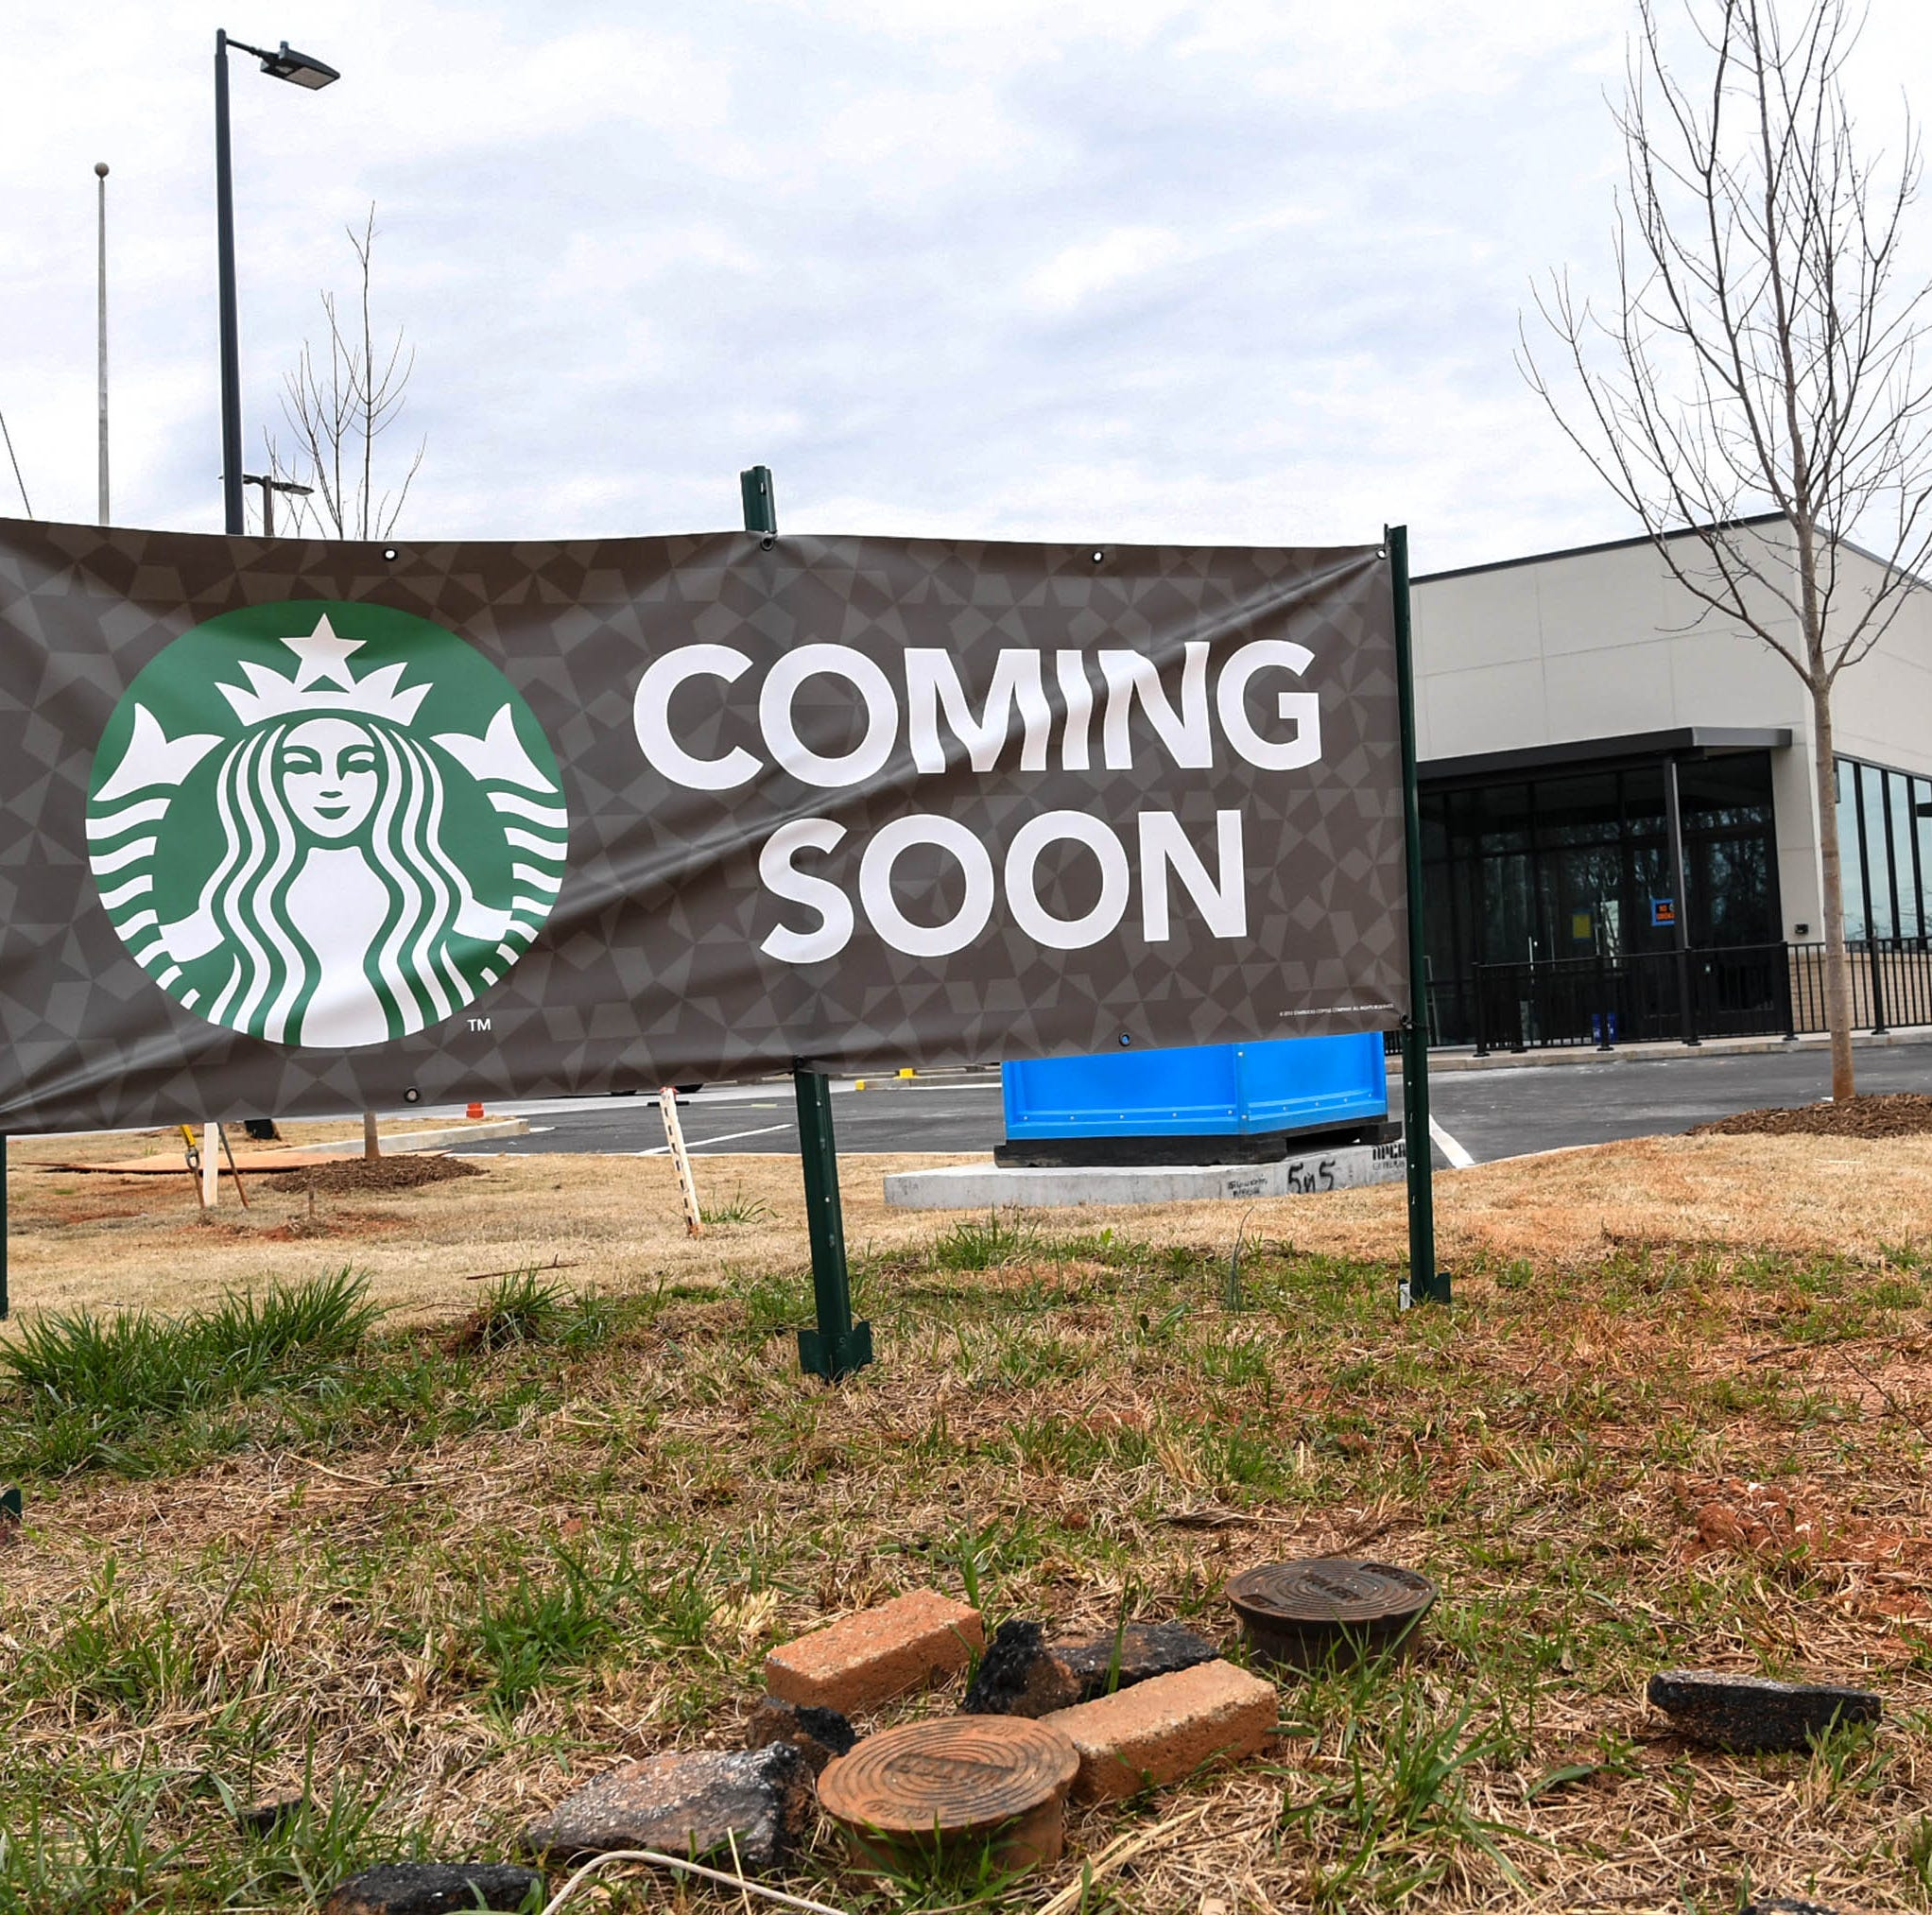 New Starbucks set to open in Anderson